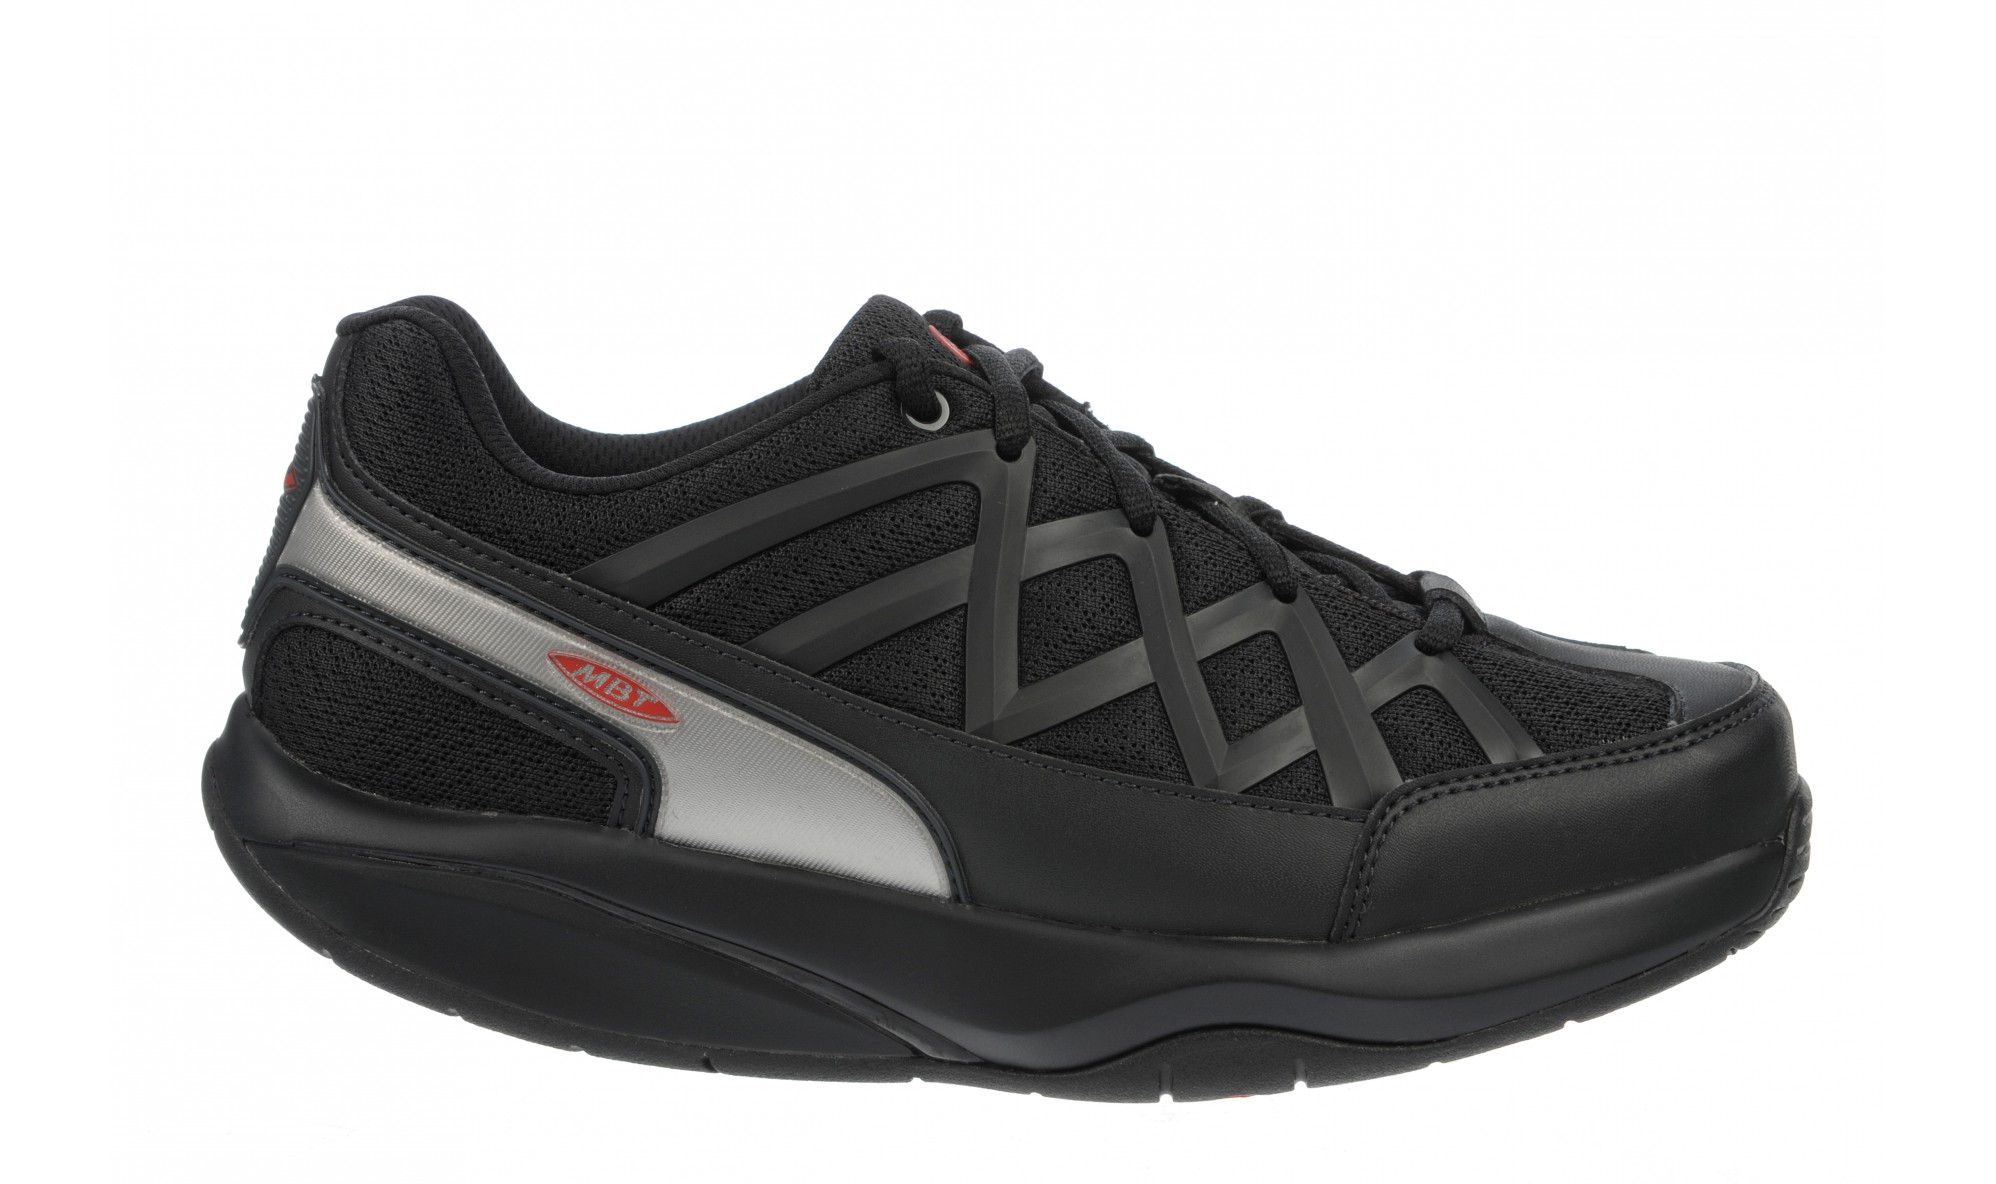 MBT Women's Sport 3 WIDE Black